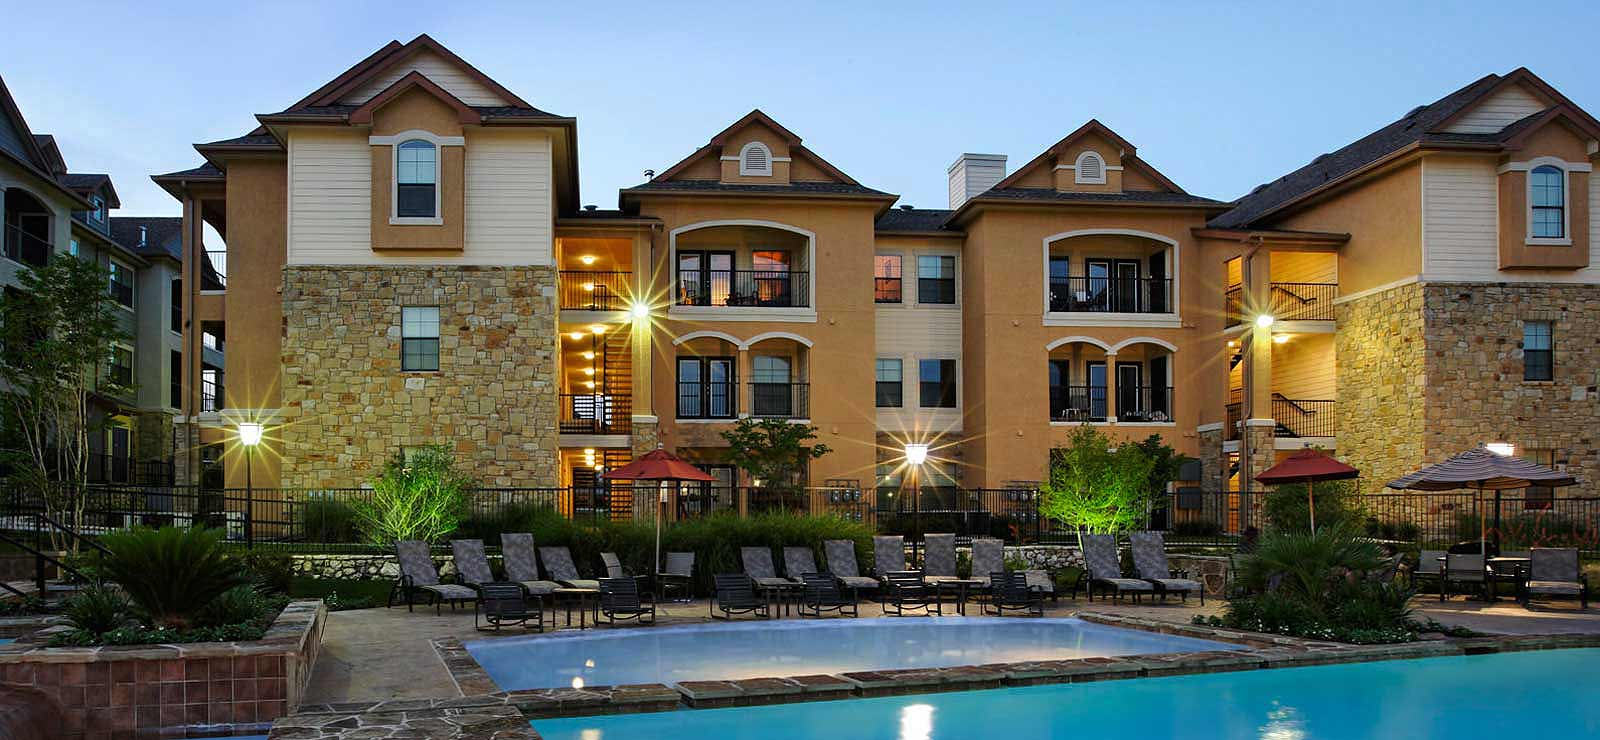 Commercial Property Management Multifamily